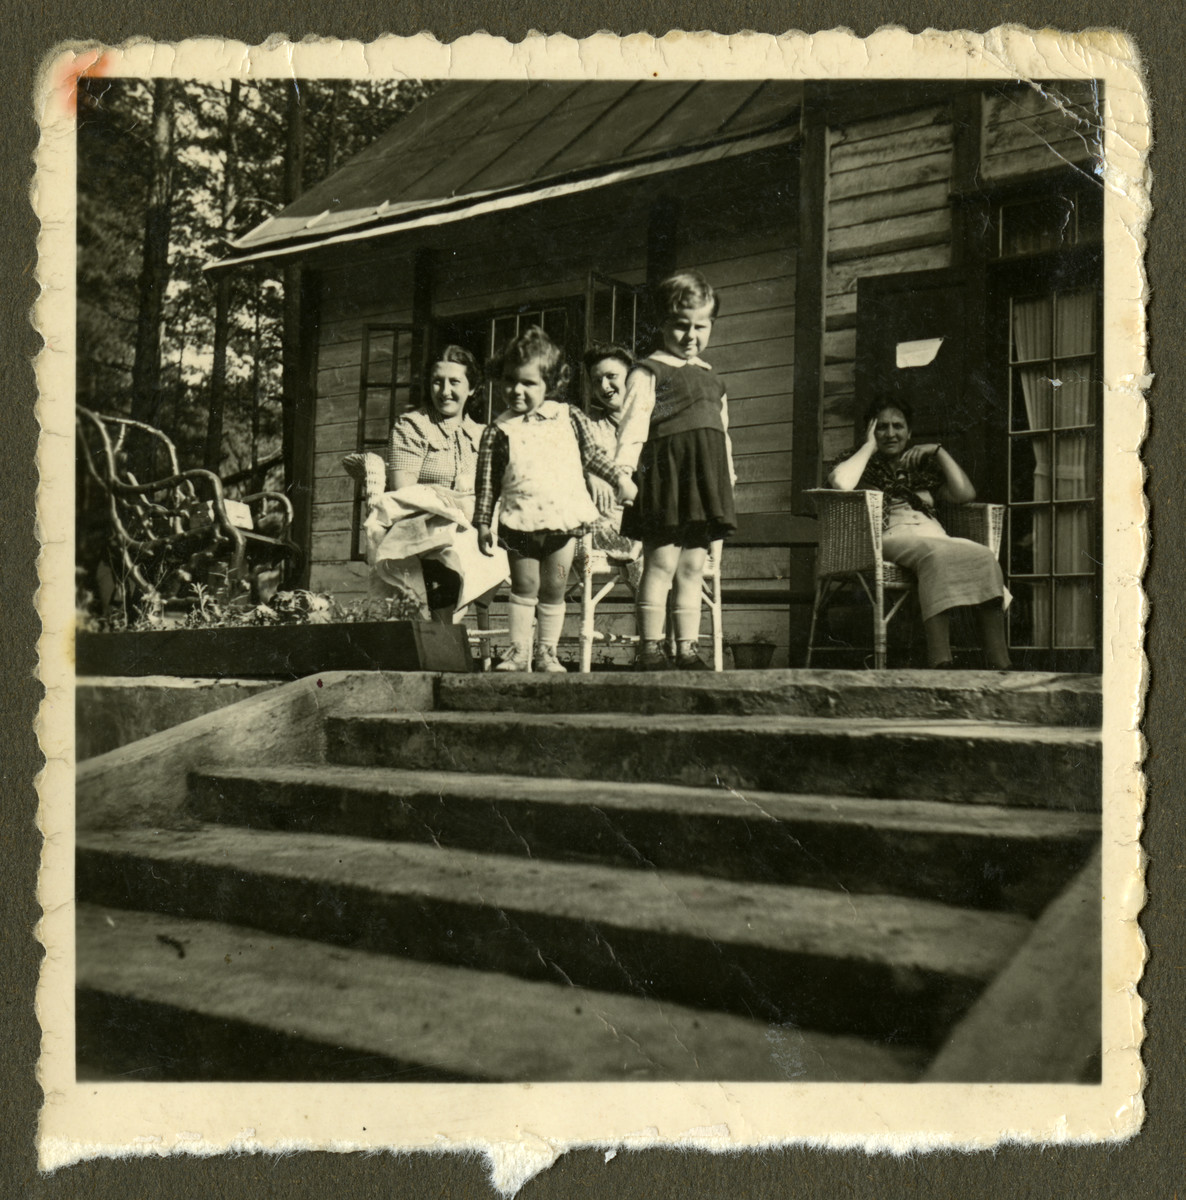 Members of the Bagriansky families relax outside a summer home in Kacerginai before the war.  Pictured are Rosian Bagriansky, her Aunt Lyda Bagriansky Geist and friends of the family. [Possibly Rosa Govshovitz and daughter.]